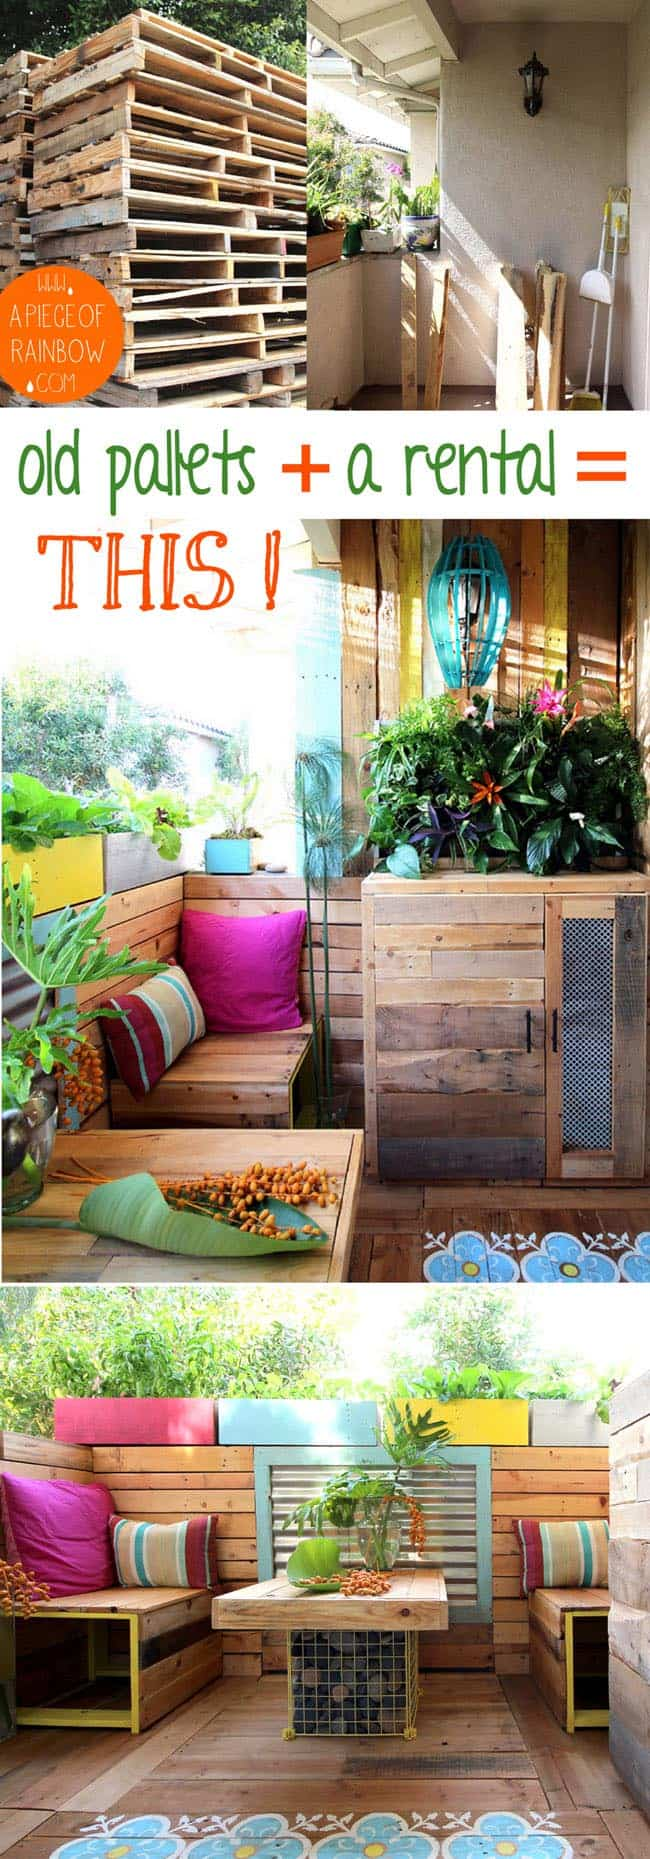 Build a stunning tropical outdoor room with